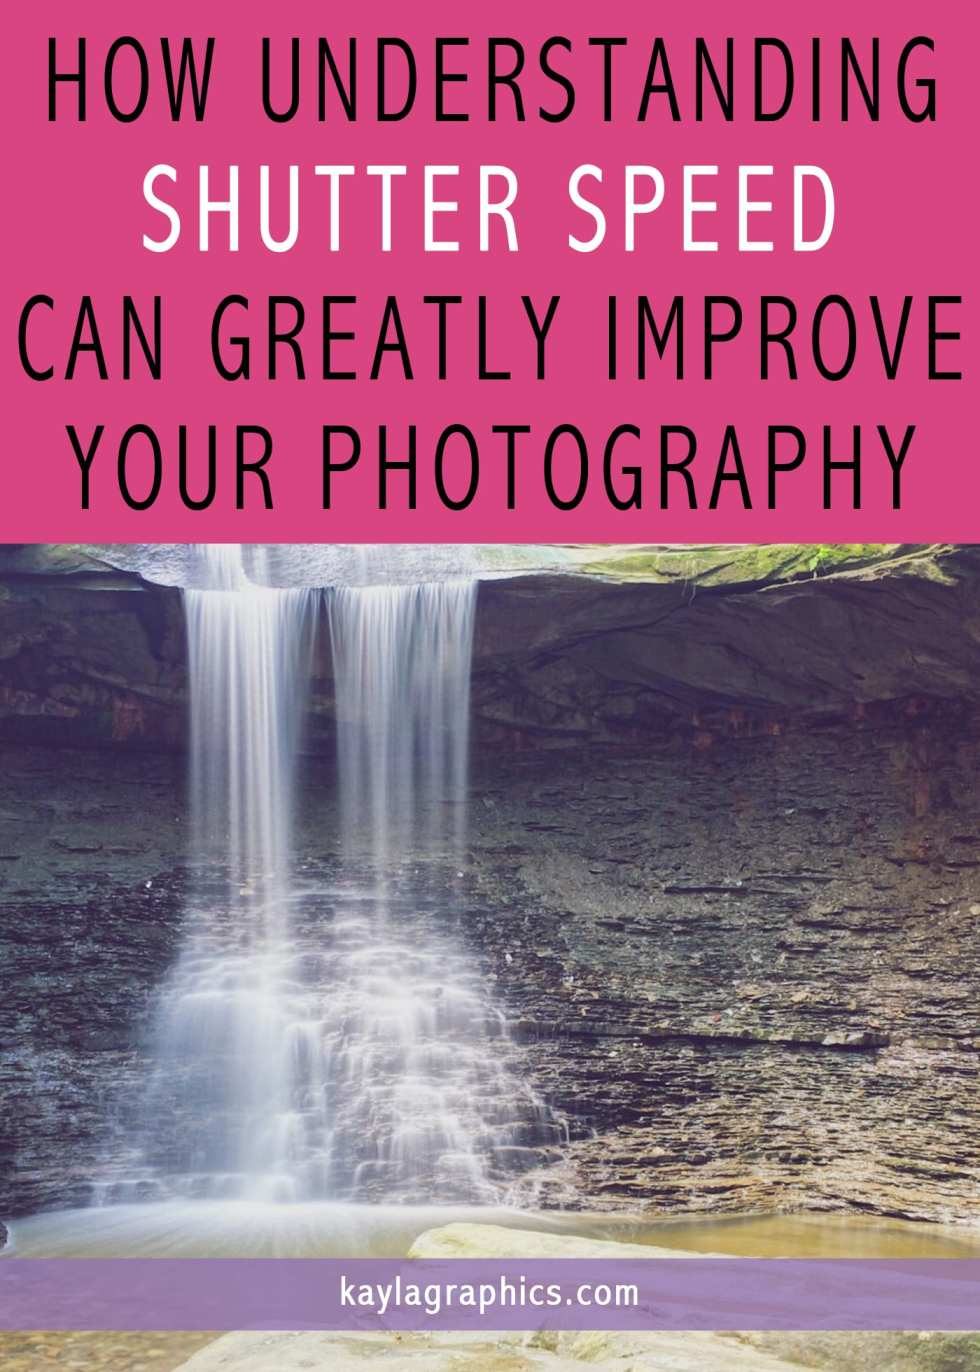 how understanding shutter speed can greatly improve photography